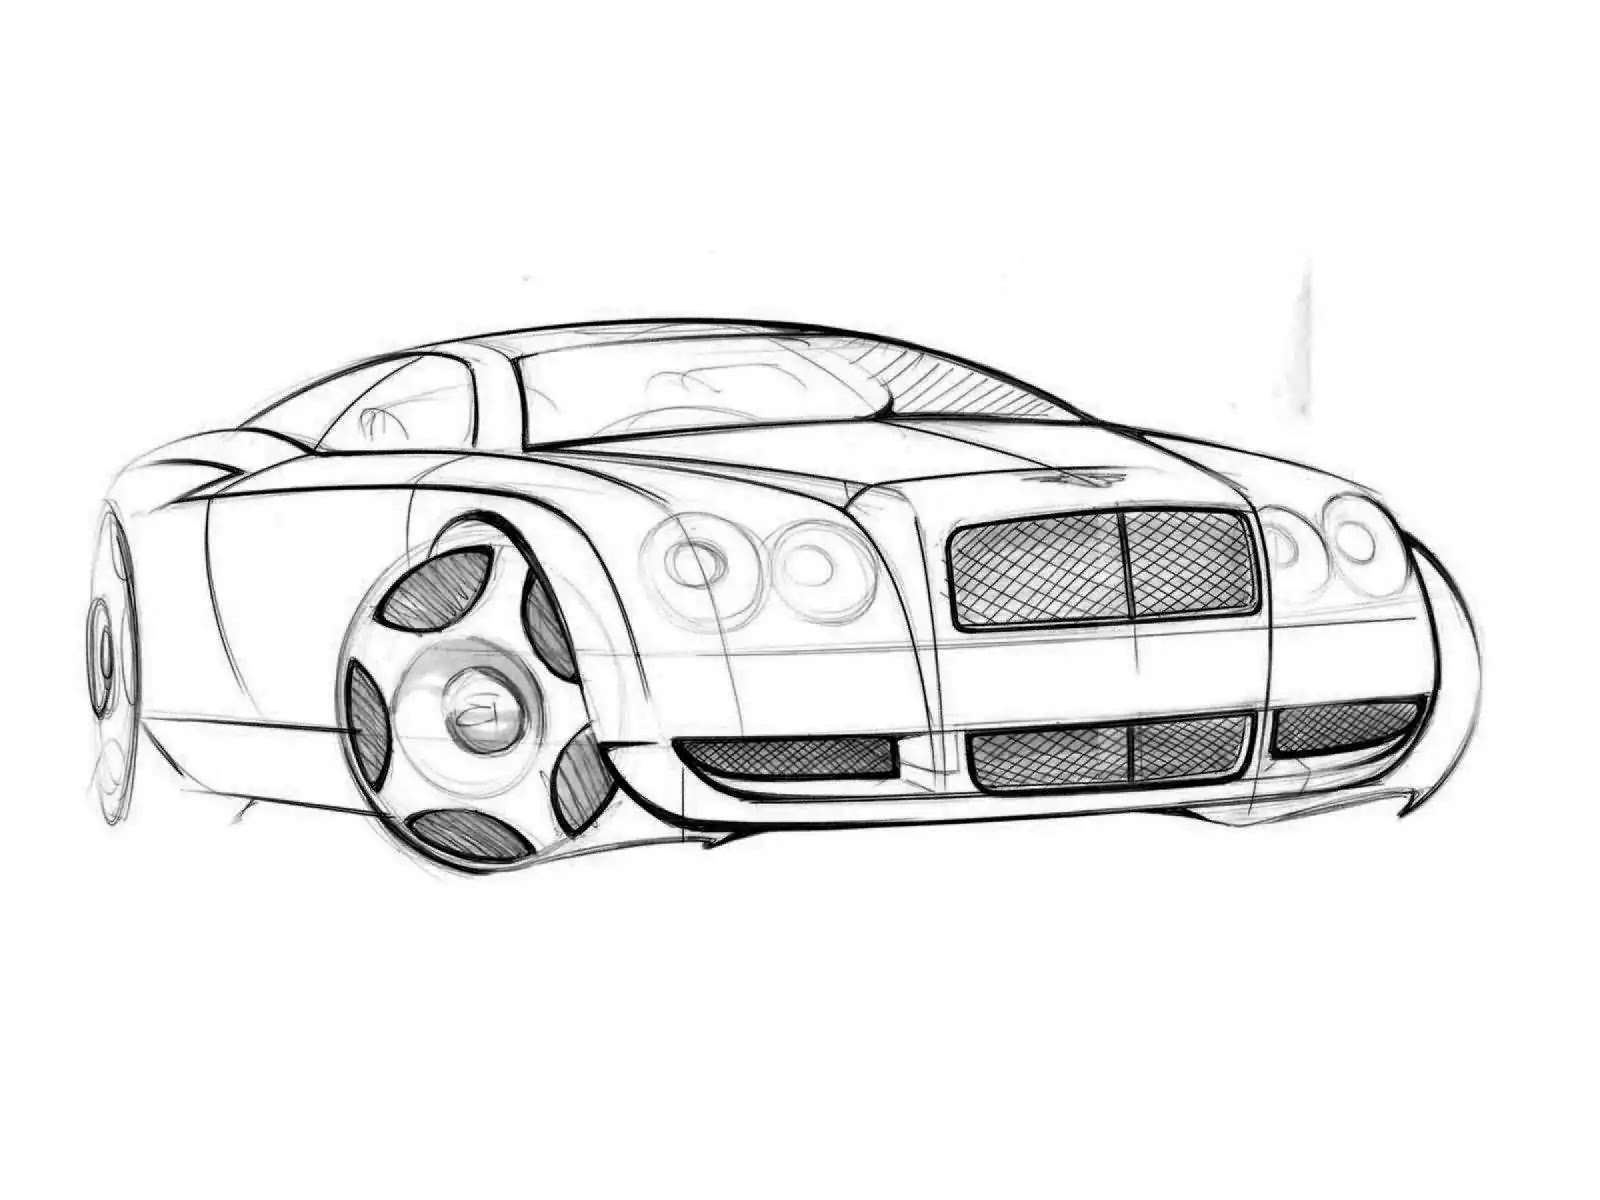 Hinh Nh Xe O To Bentley Continental Gt Prototype